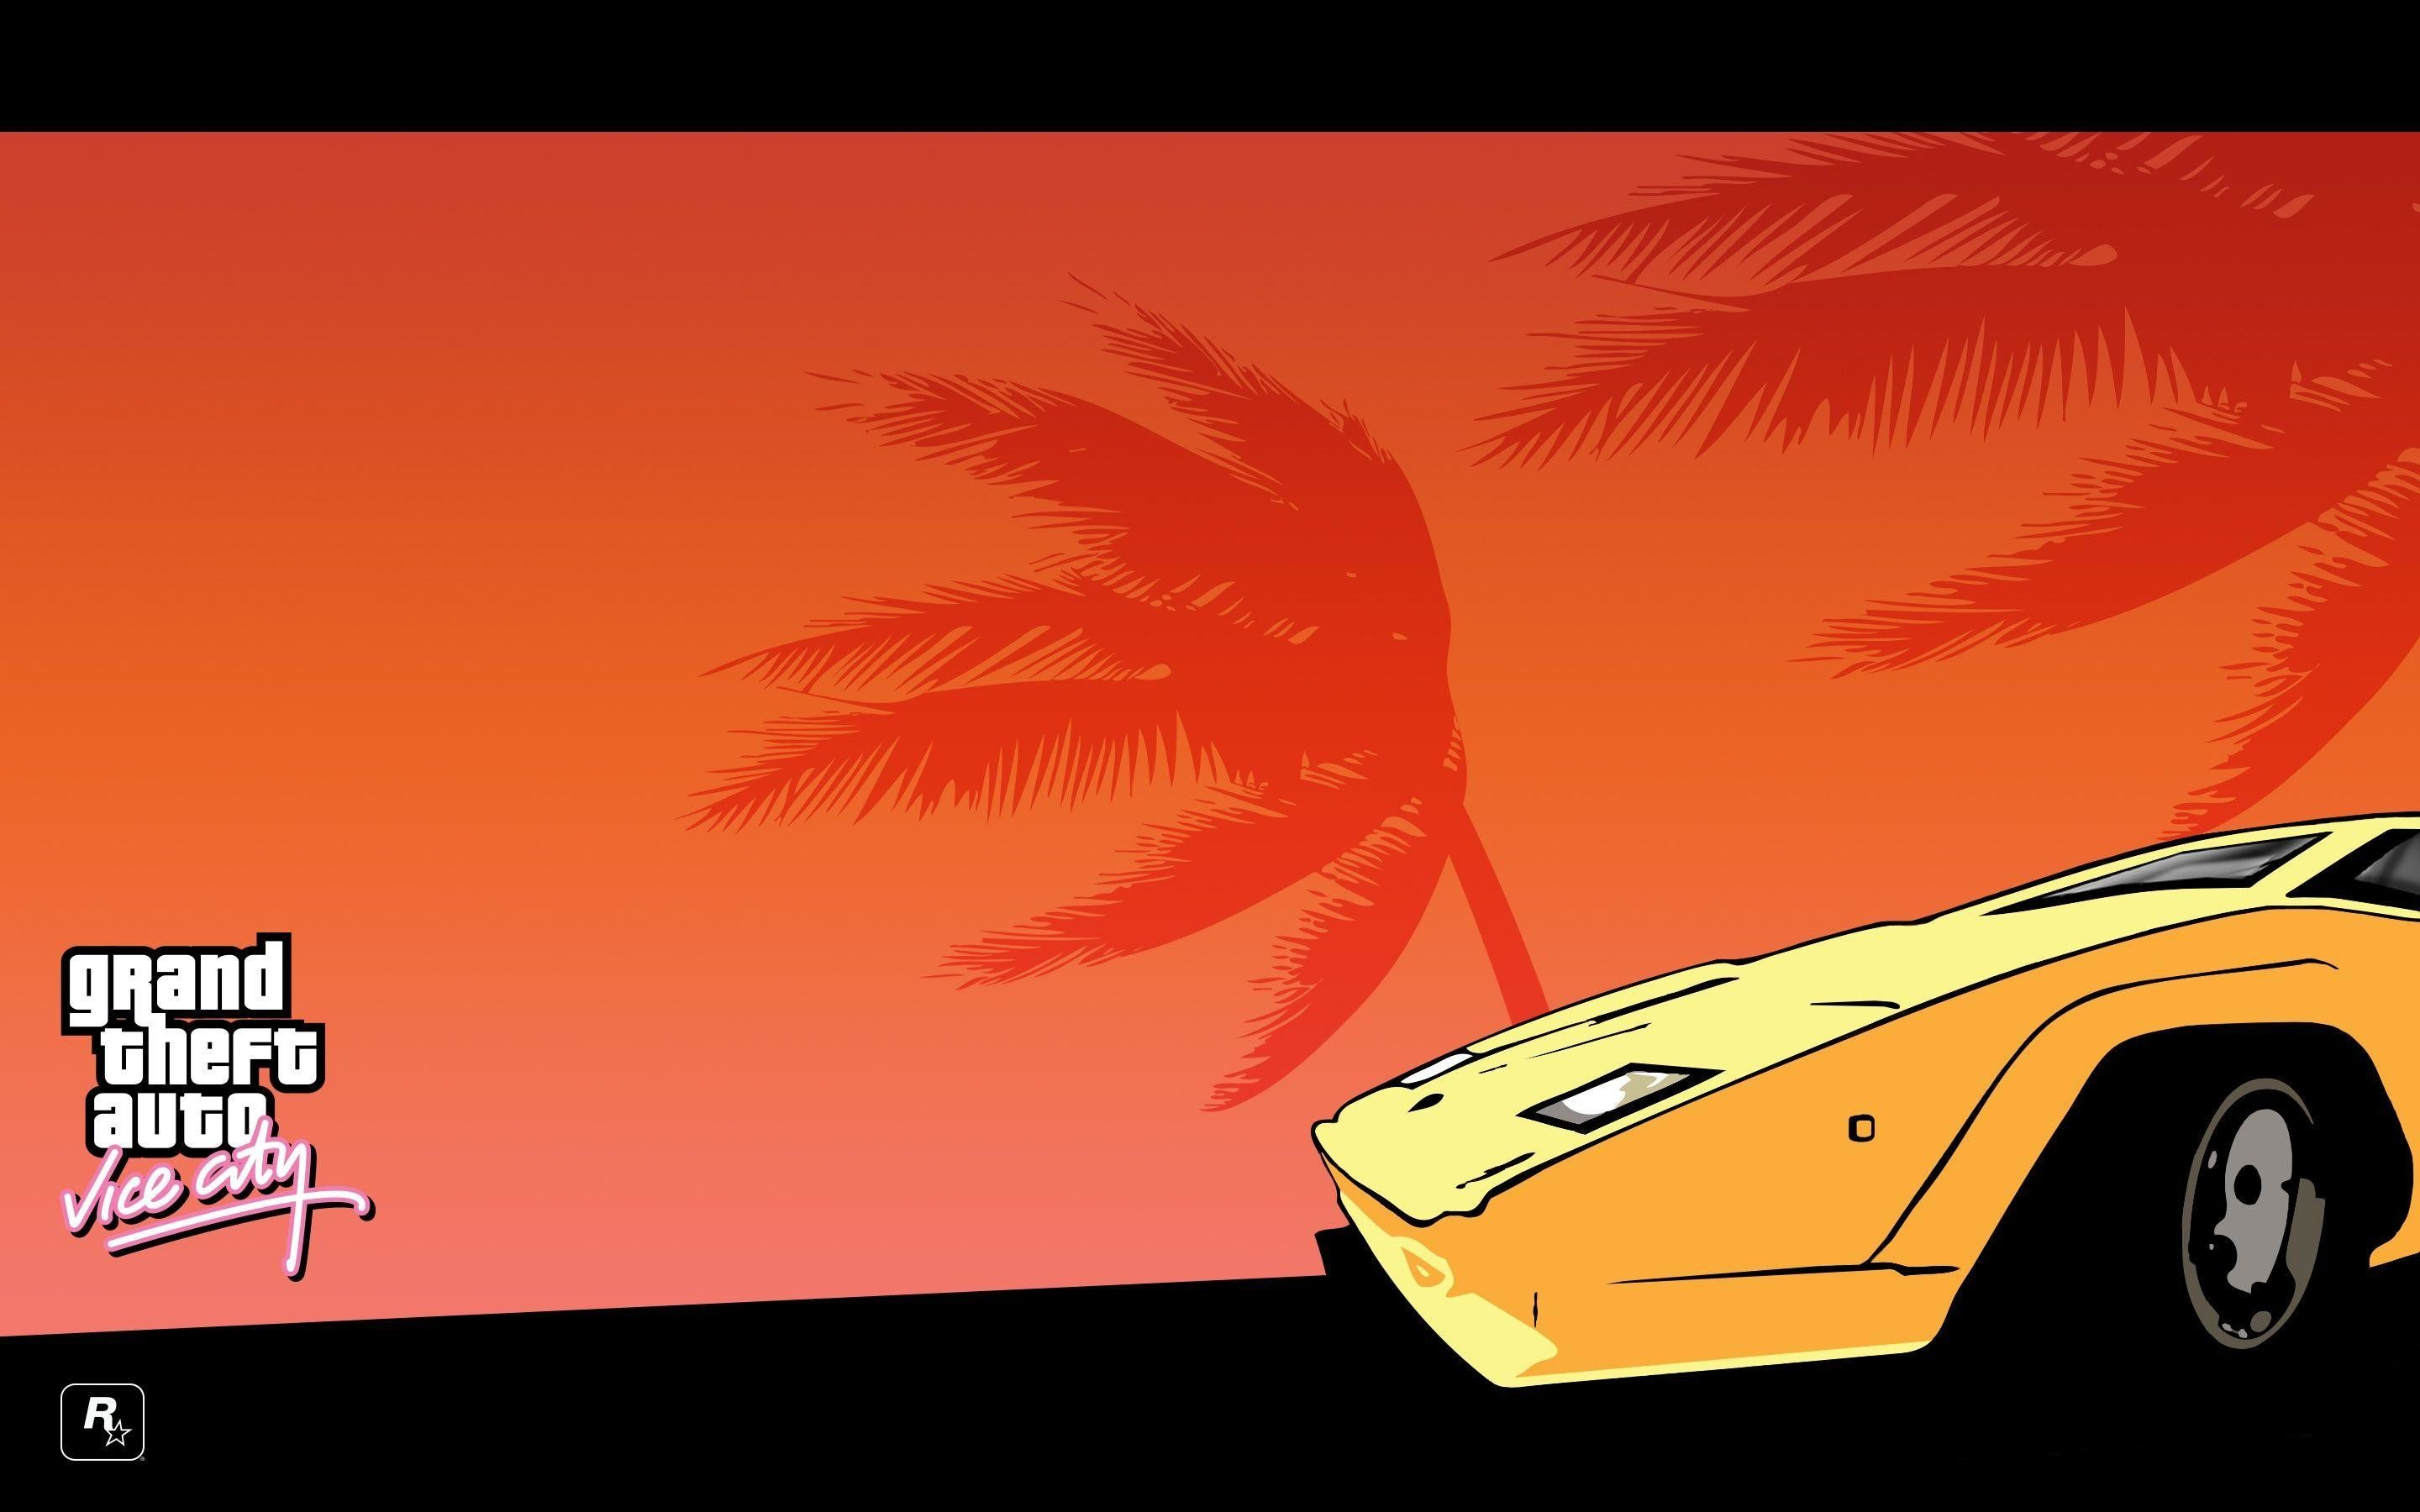 2880x1800 Grand Theft Auto Vice City Wallpapers Grand Theft